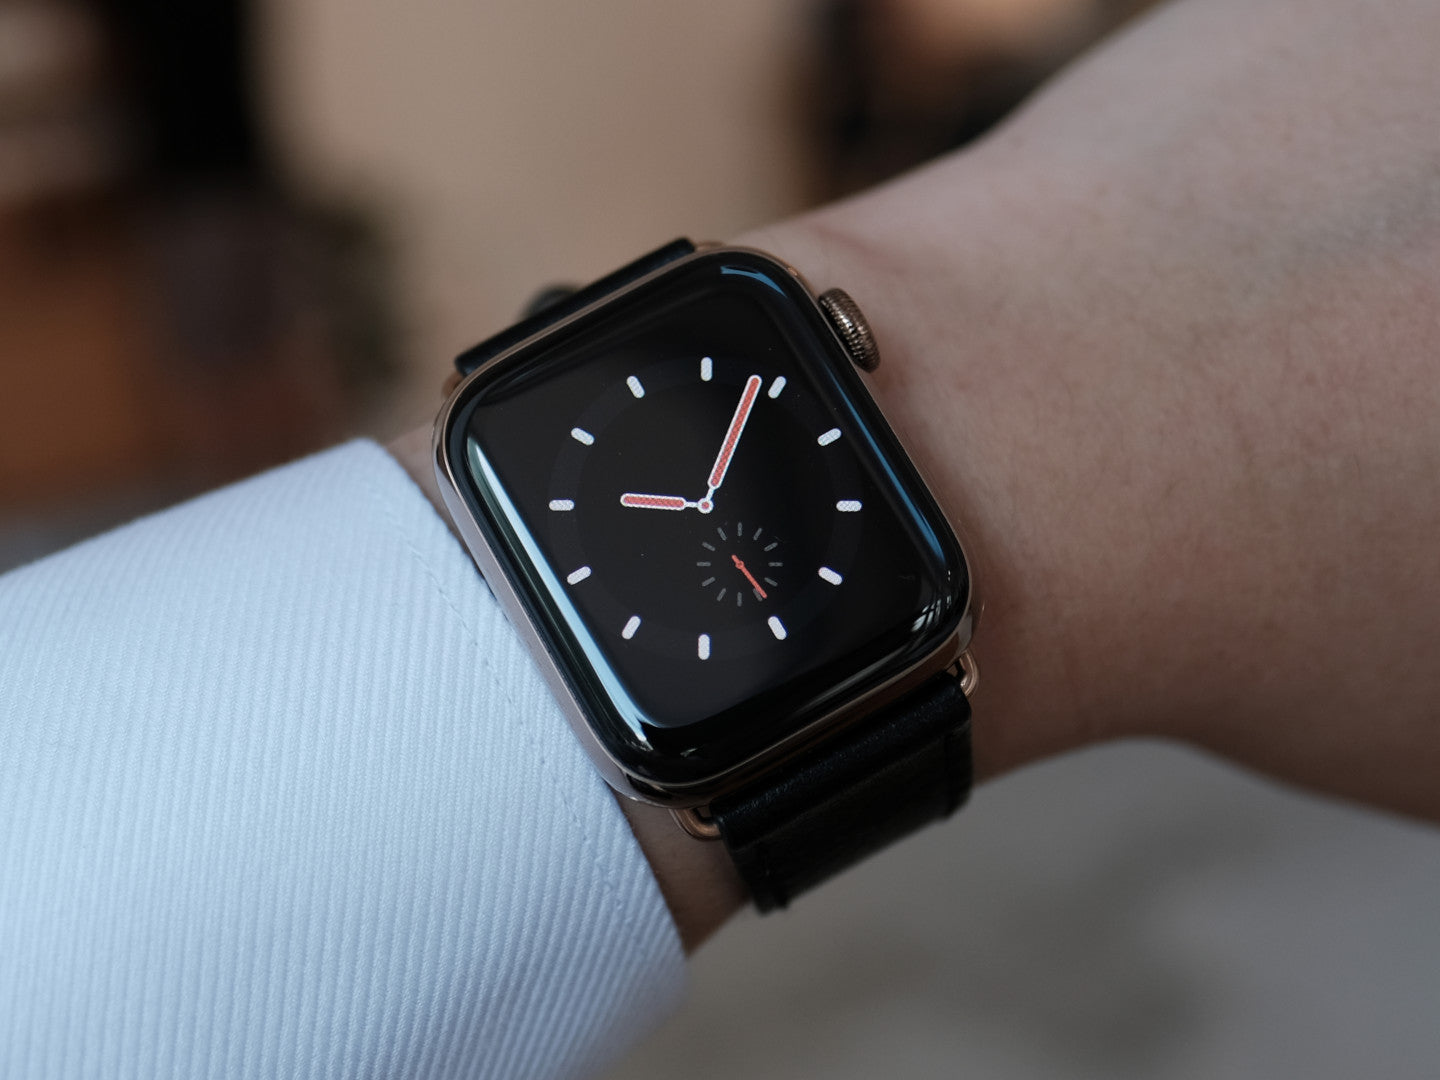 Pin and Buckle Apple Watch Leather Bands - Full Grain Vegetable Tanned Leather - Luxe - Nero Black - Explorer - Red-White